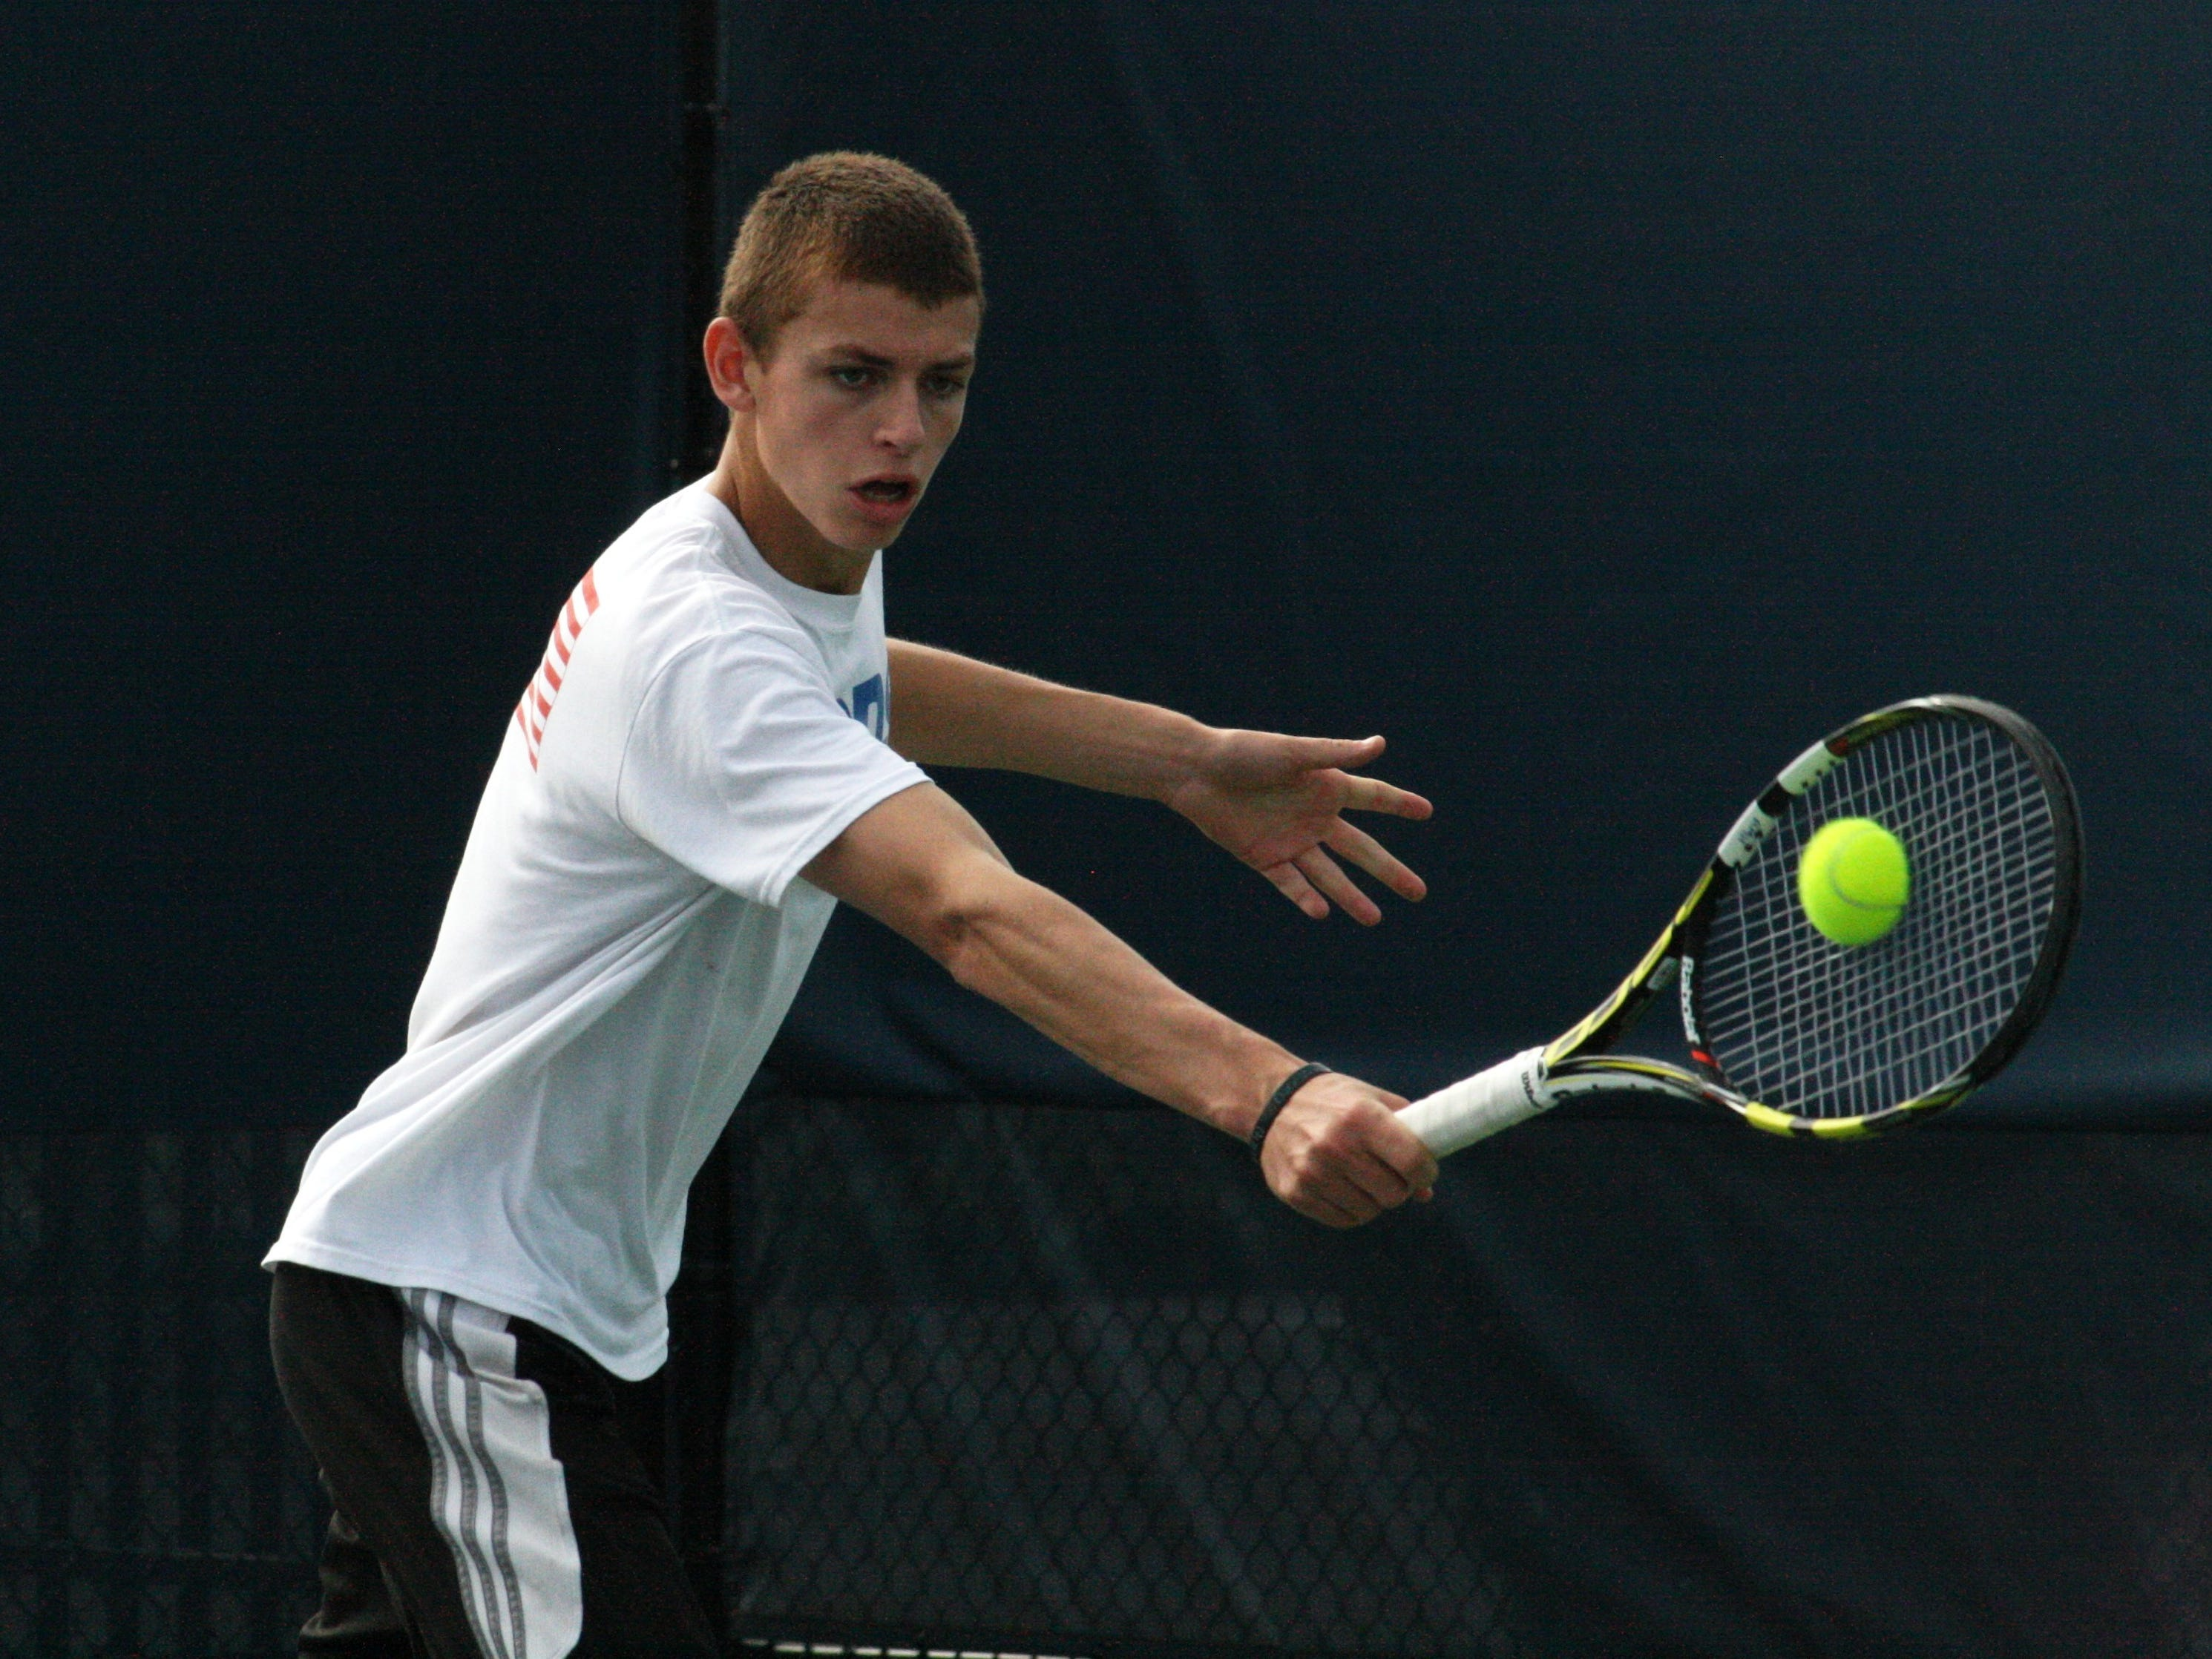 Cincinnati Country Day's Asher Hirsch is looking for his third straight Division II state singles title.